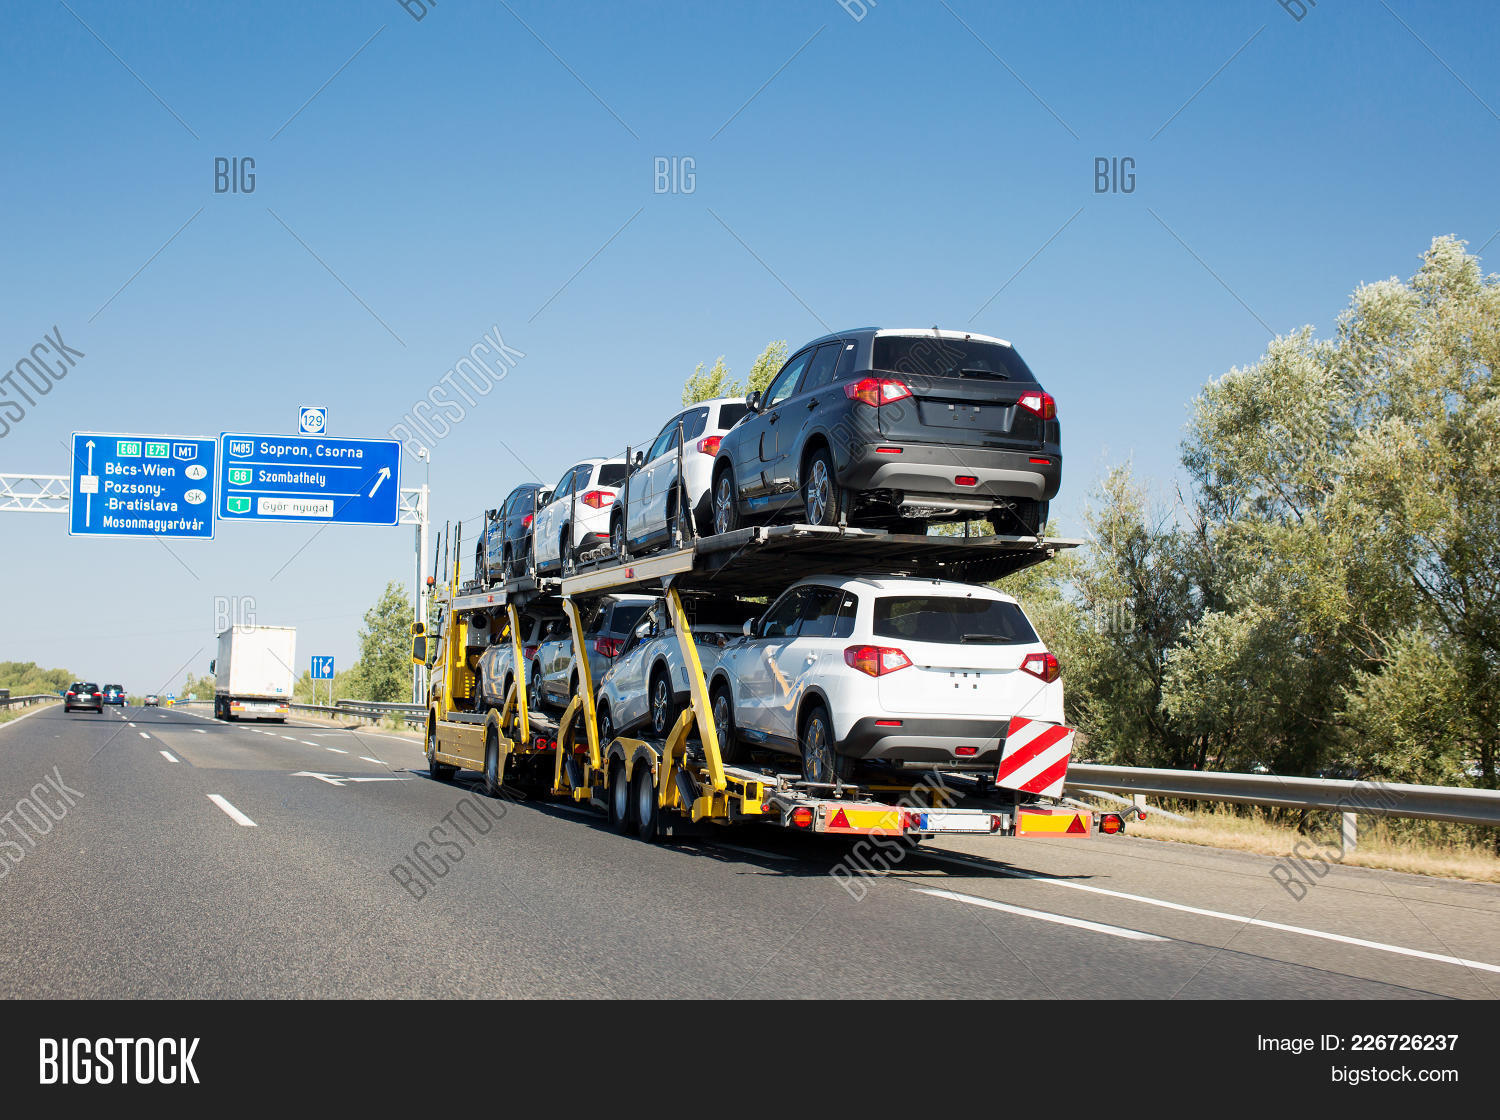 Big Car Carrier Trailer New Cars Image & Photo | Bigstock